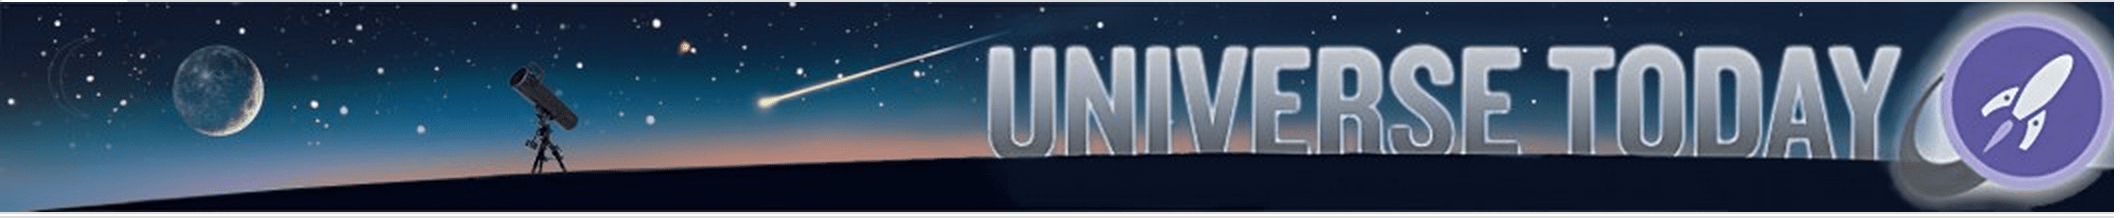 Universe Today header image